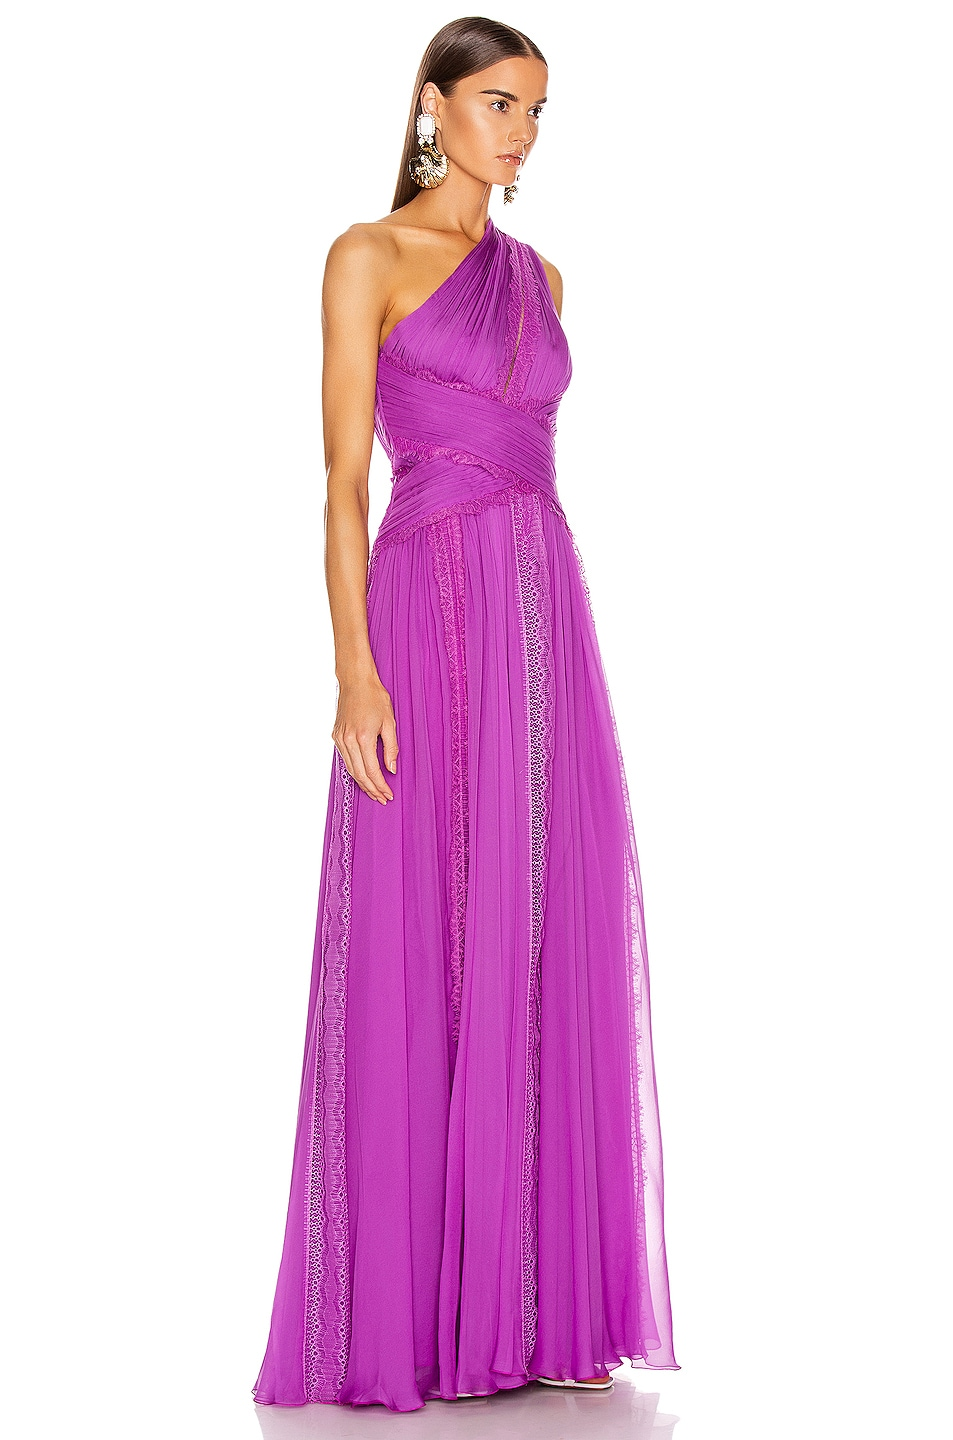 Image 2 of Zuhair Murad Silk Chiffon Long Dress in Hyacinth Violet